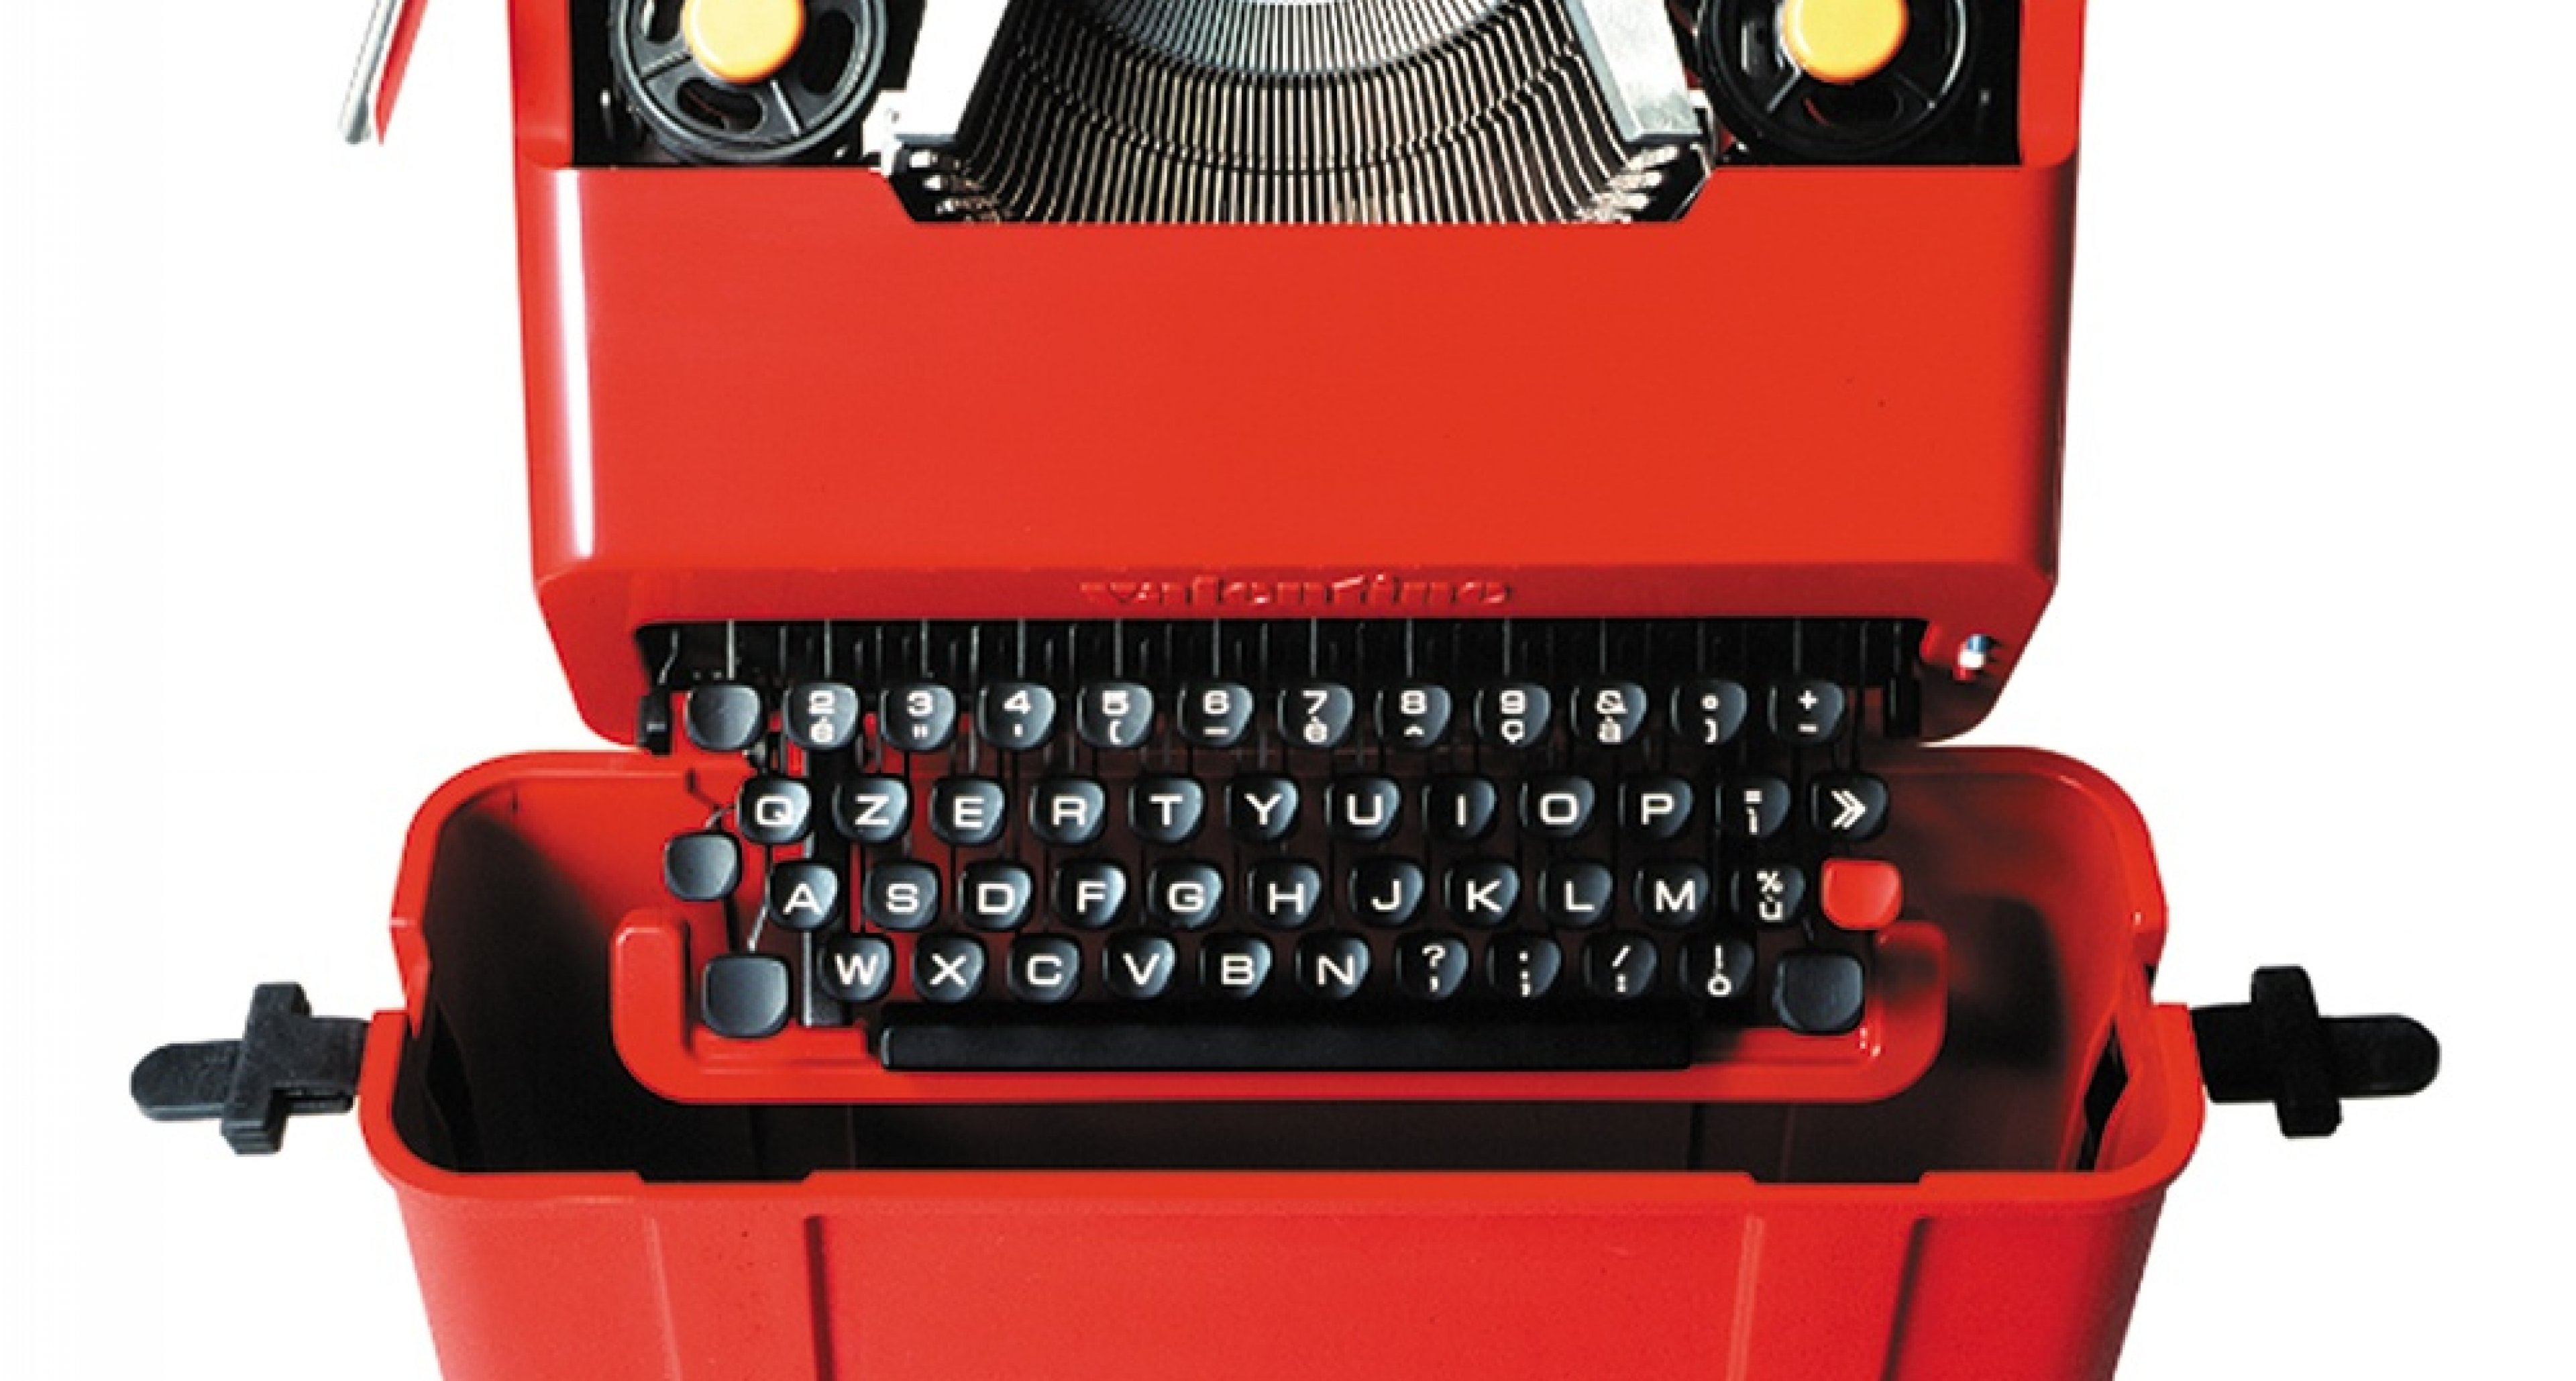 Olivetti Valentine, Ettore Sottsass and Perry A. King, 1969. Courtesy: Studio Ettore Sottsass